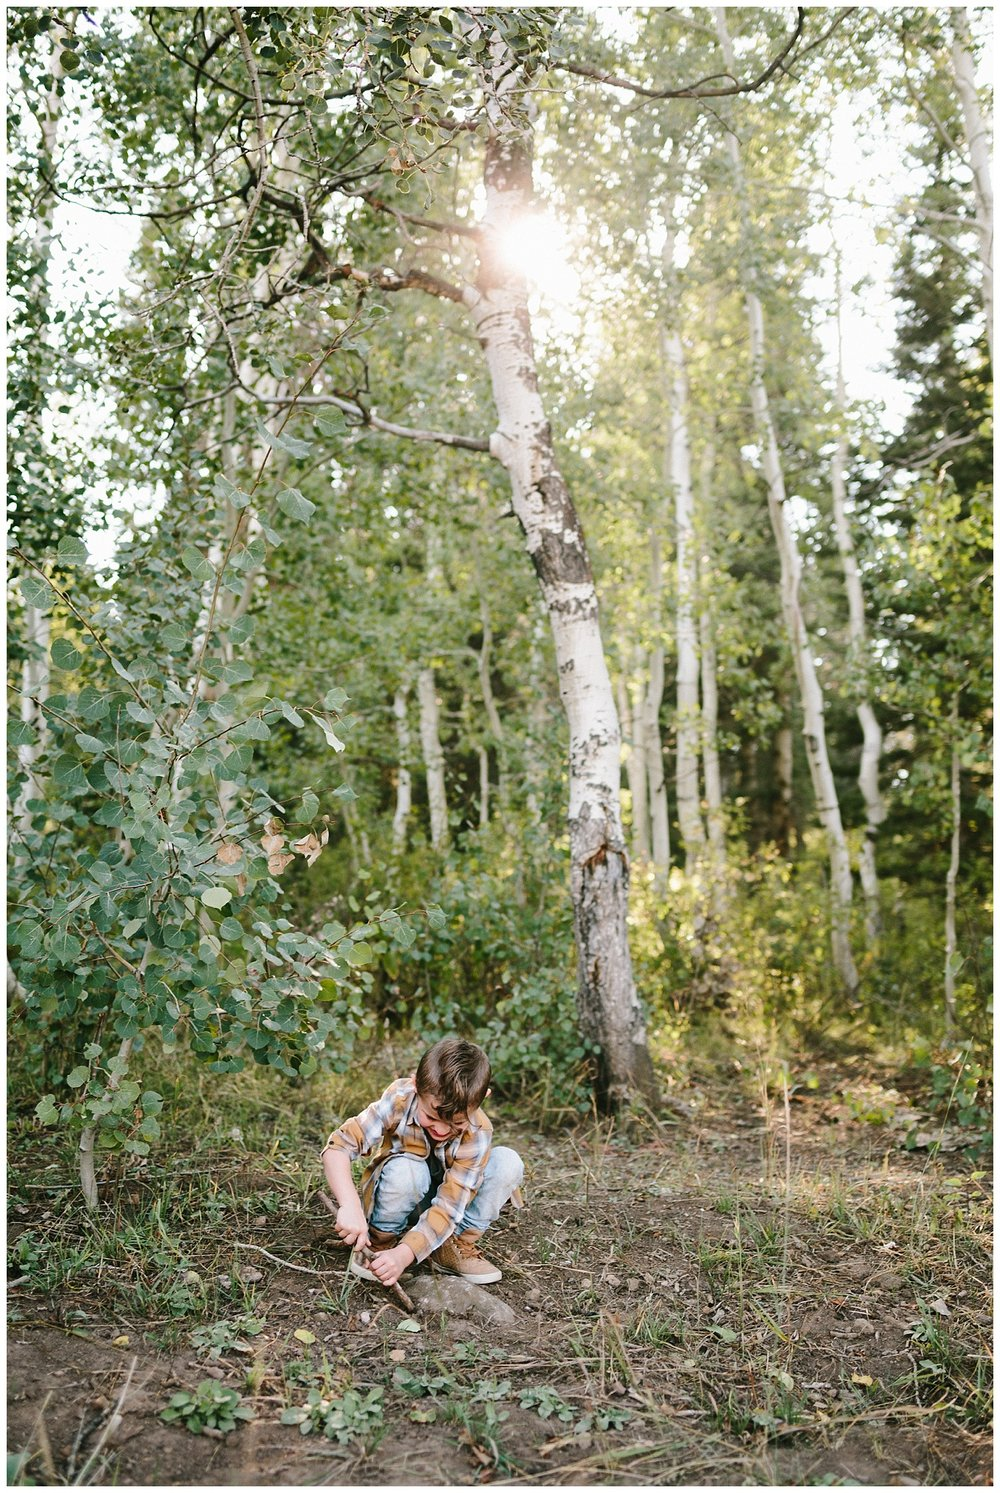 family+lifestyle+photographer+utah+mountains+dayna+grace_0069.jpg